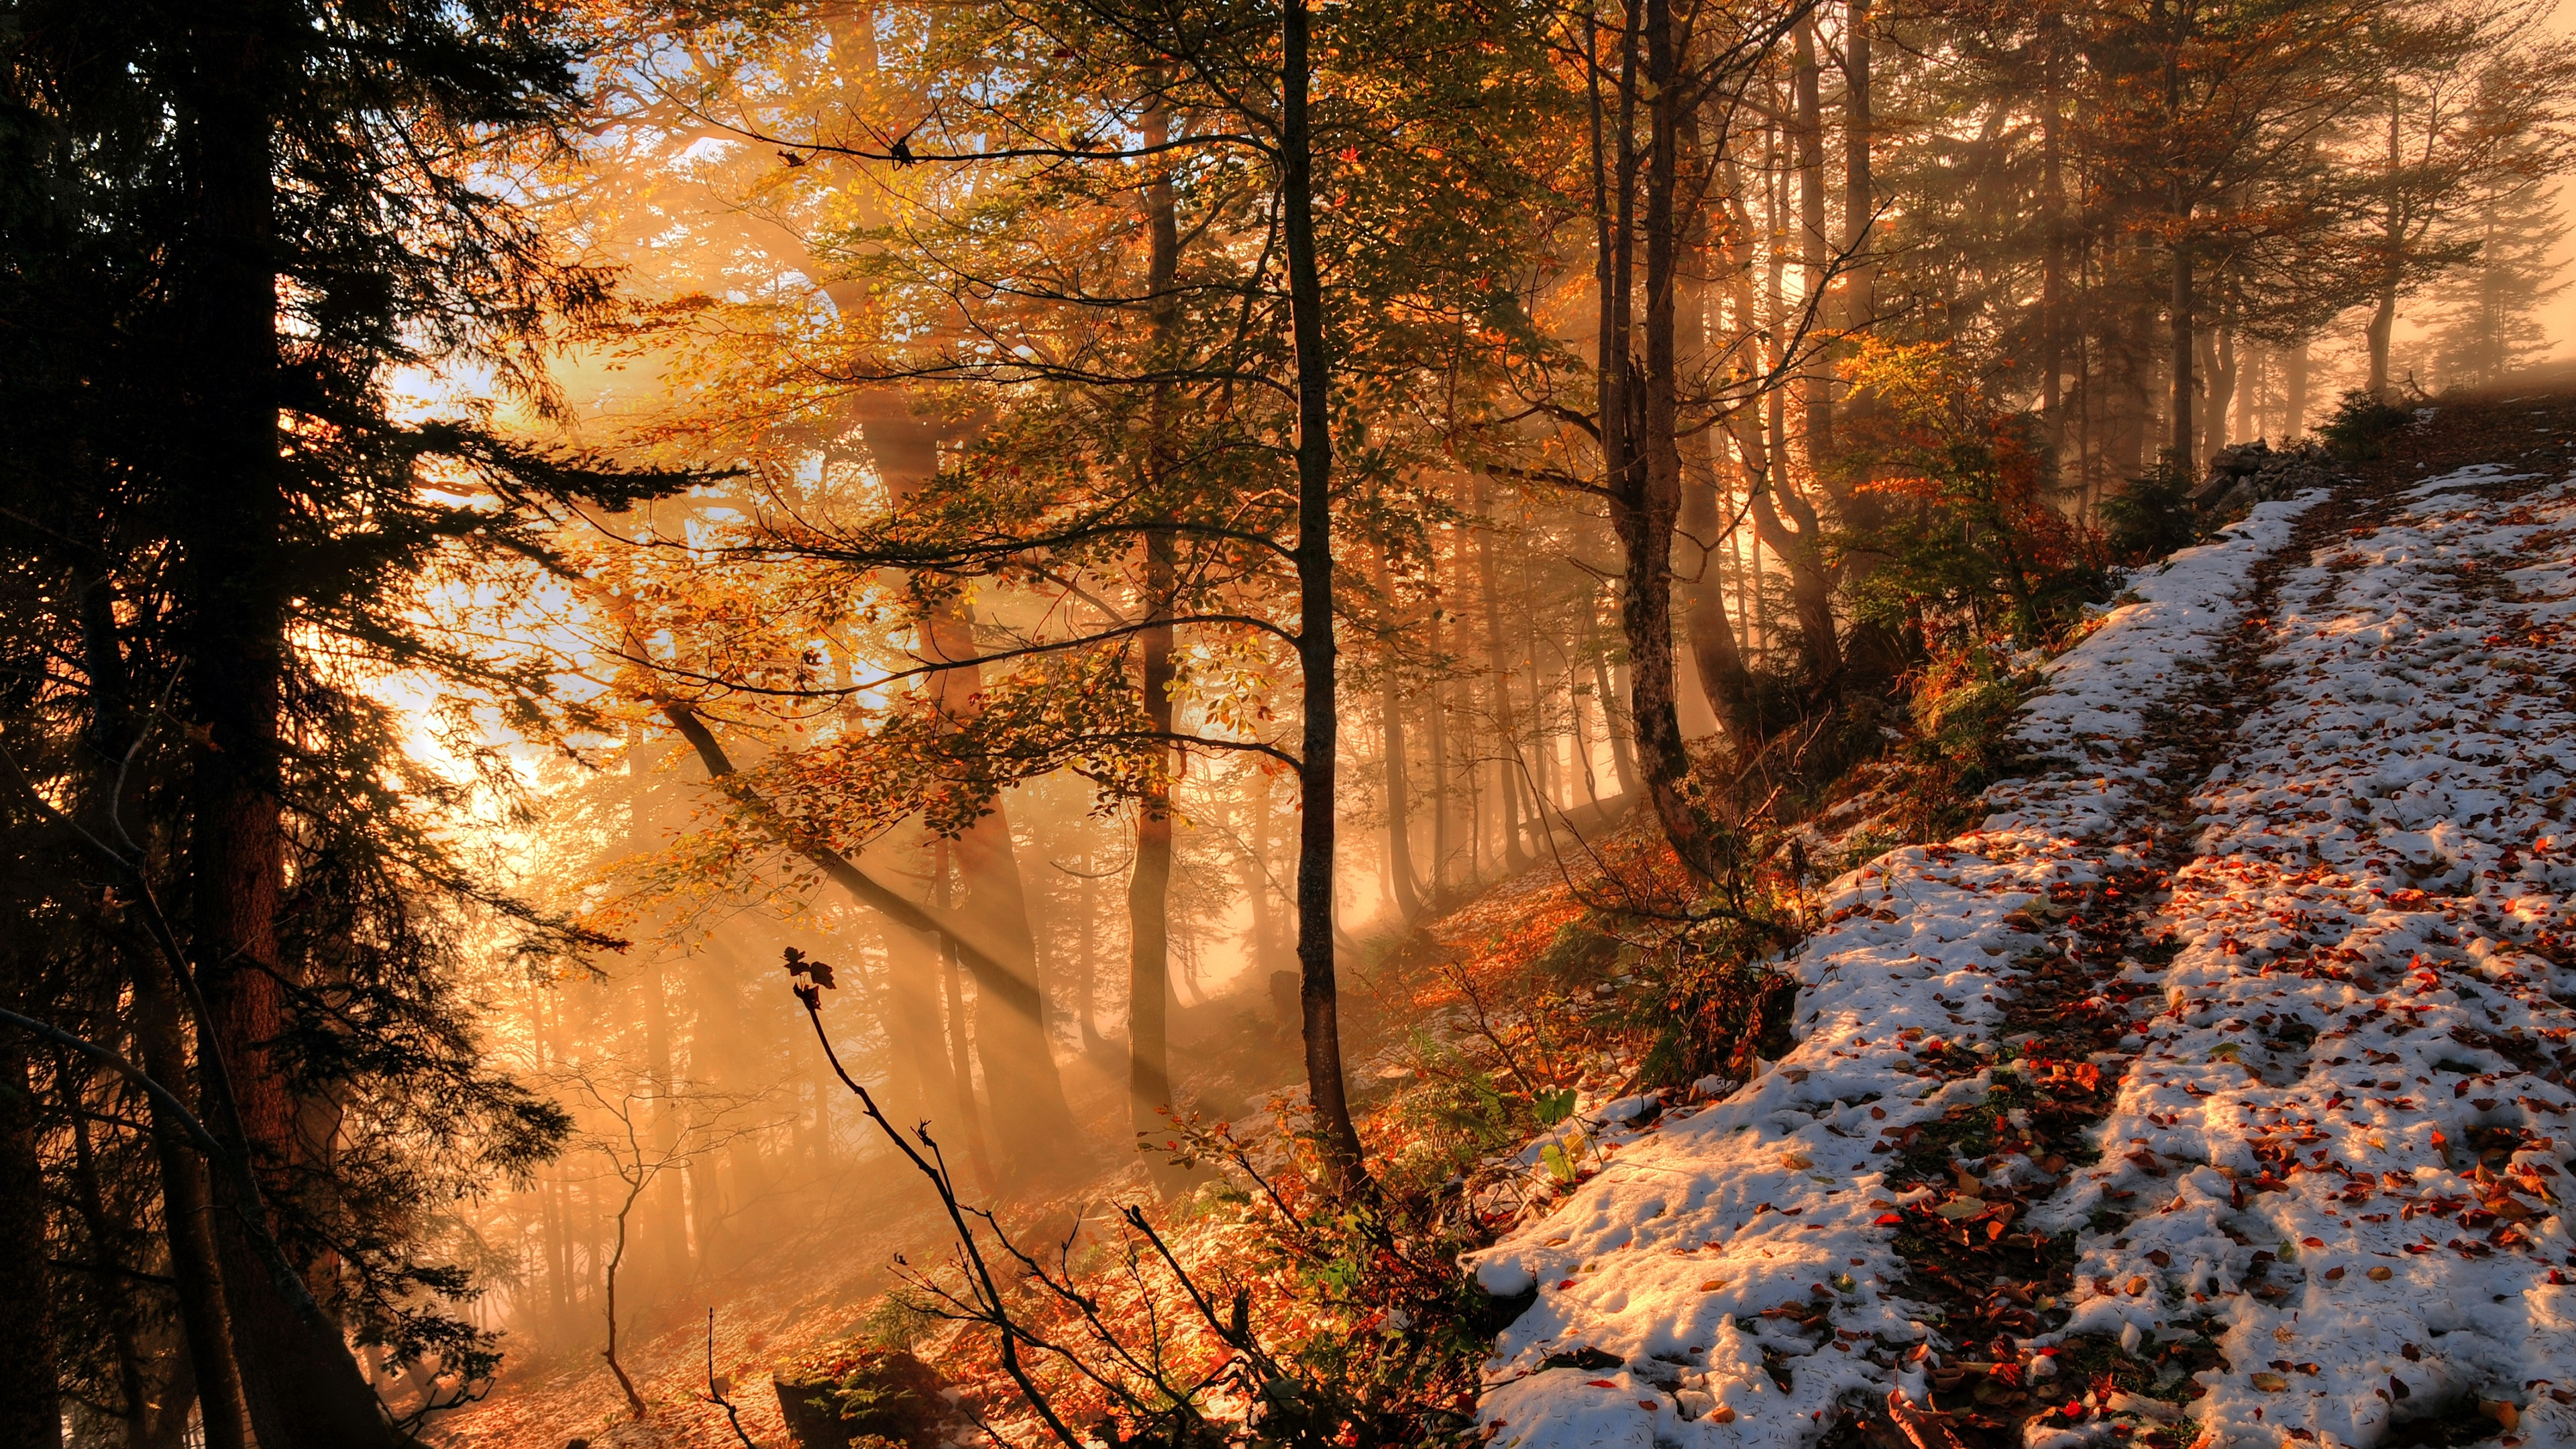 Early snow in the forest wallpaper